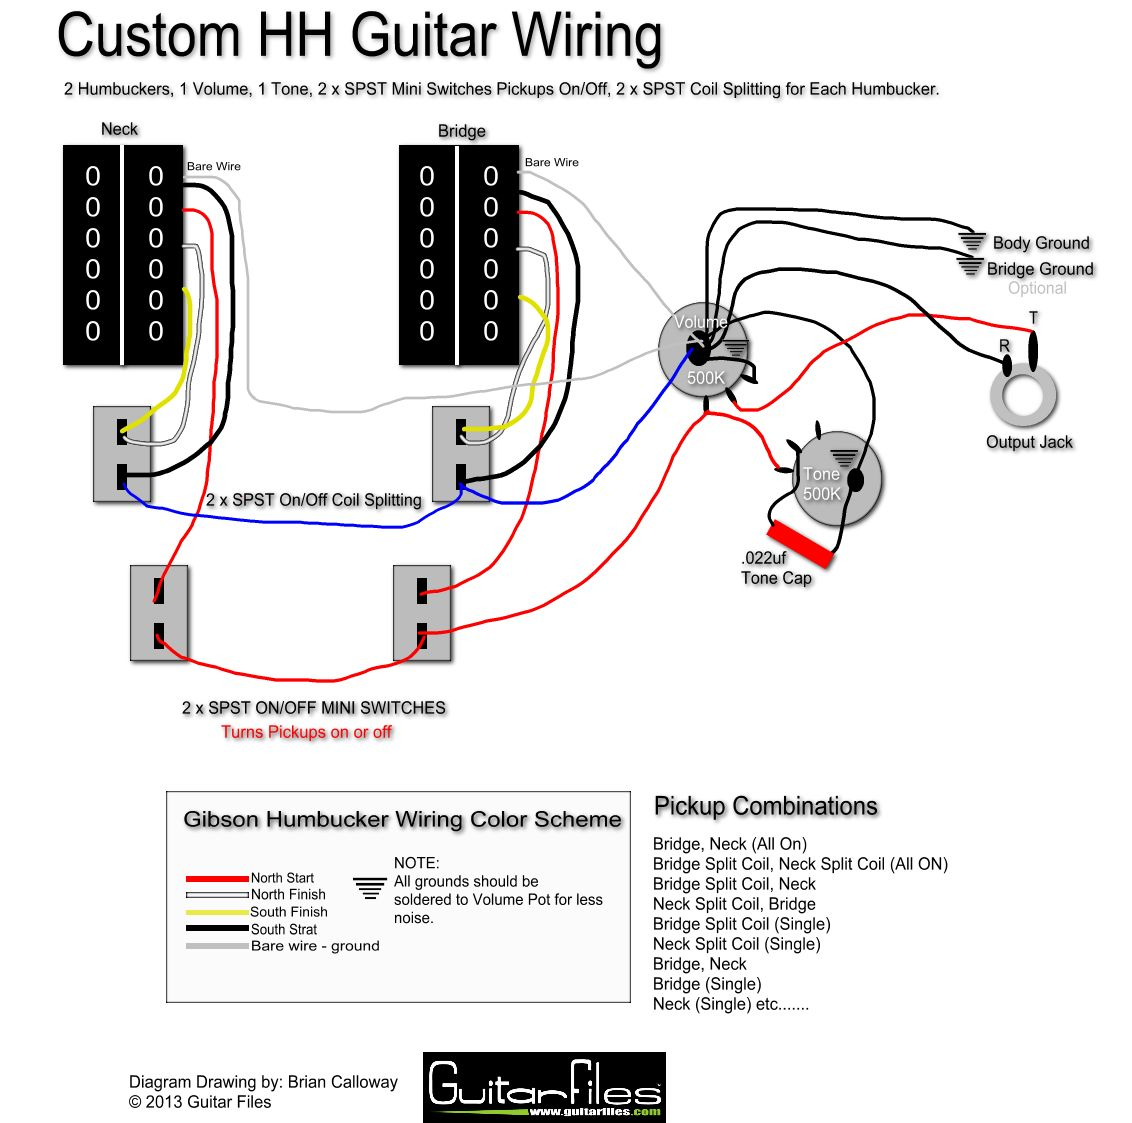 afe4f8370c0d308d426df63ec12f015c custom hh wiring diagram with spst coil splitting and spst humbucker coil split wiring diagram at gsmportal.co